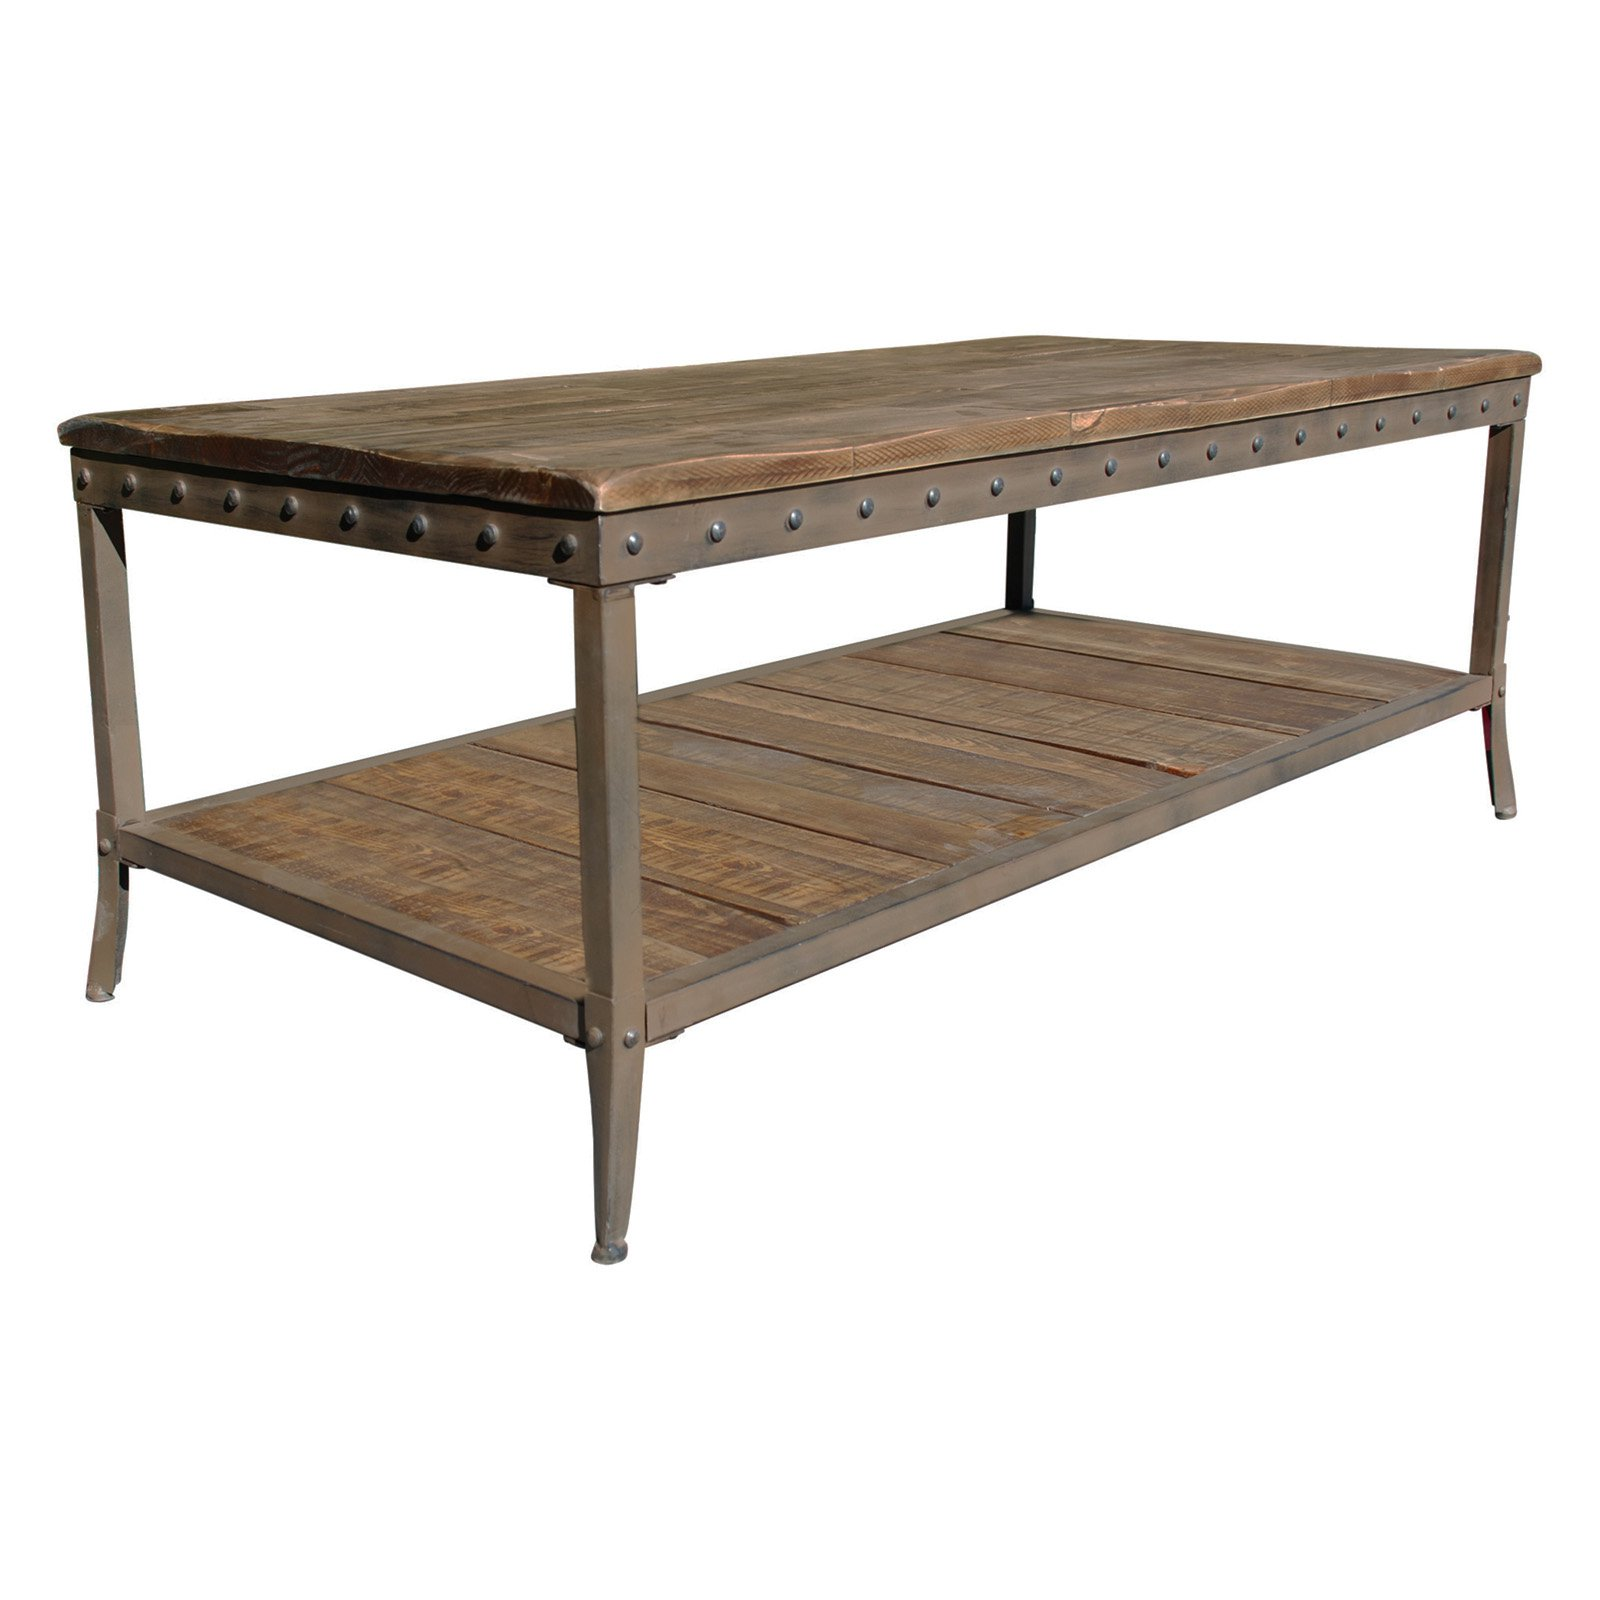 !nspire Rustic Coffee Table with Shelf